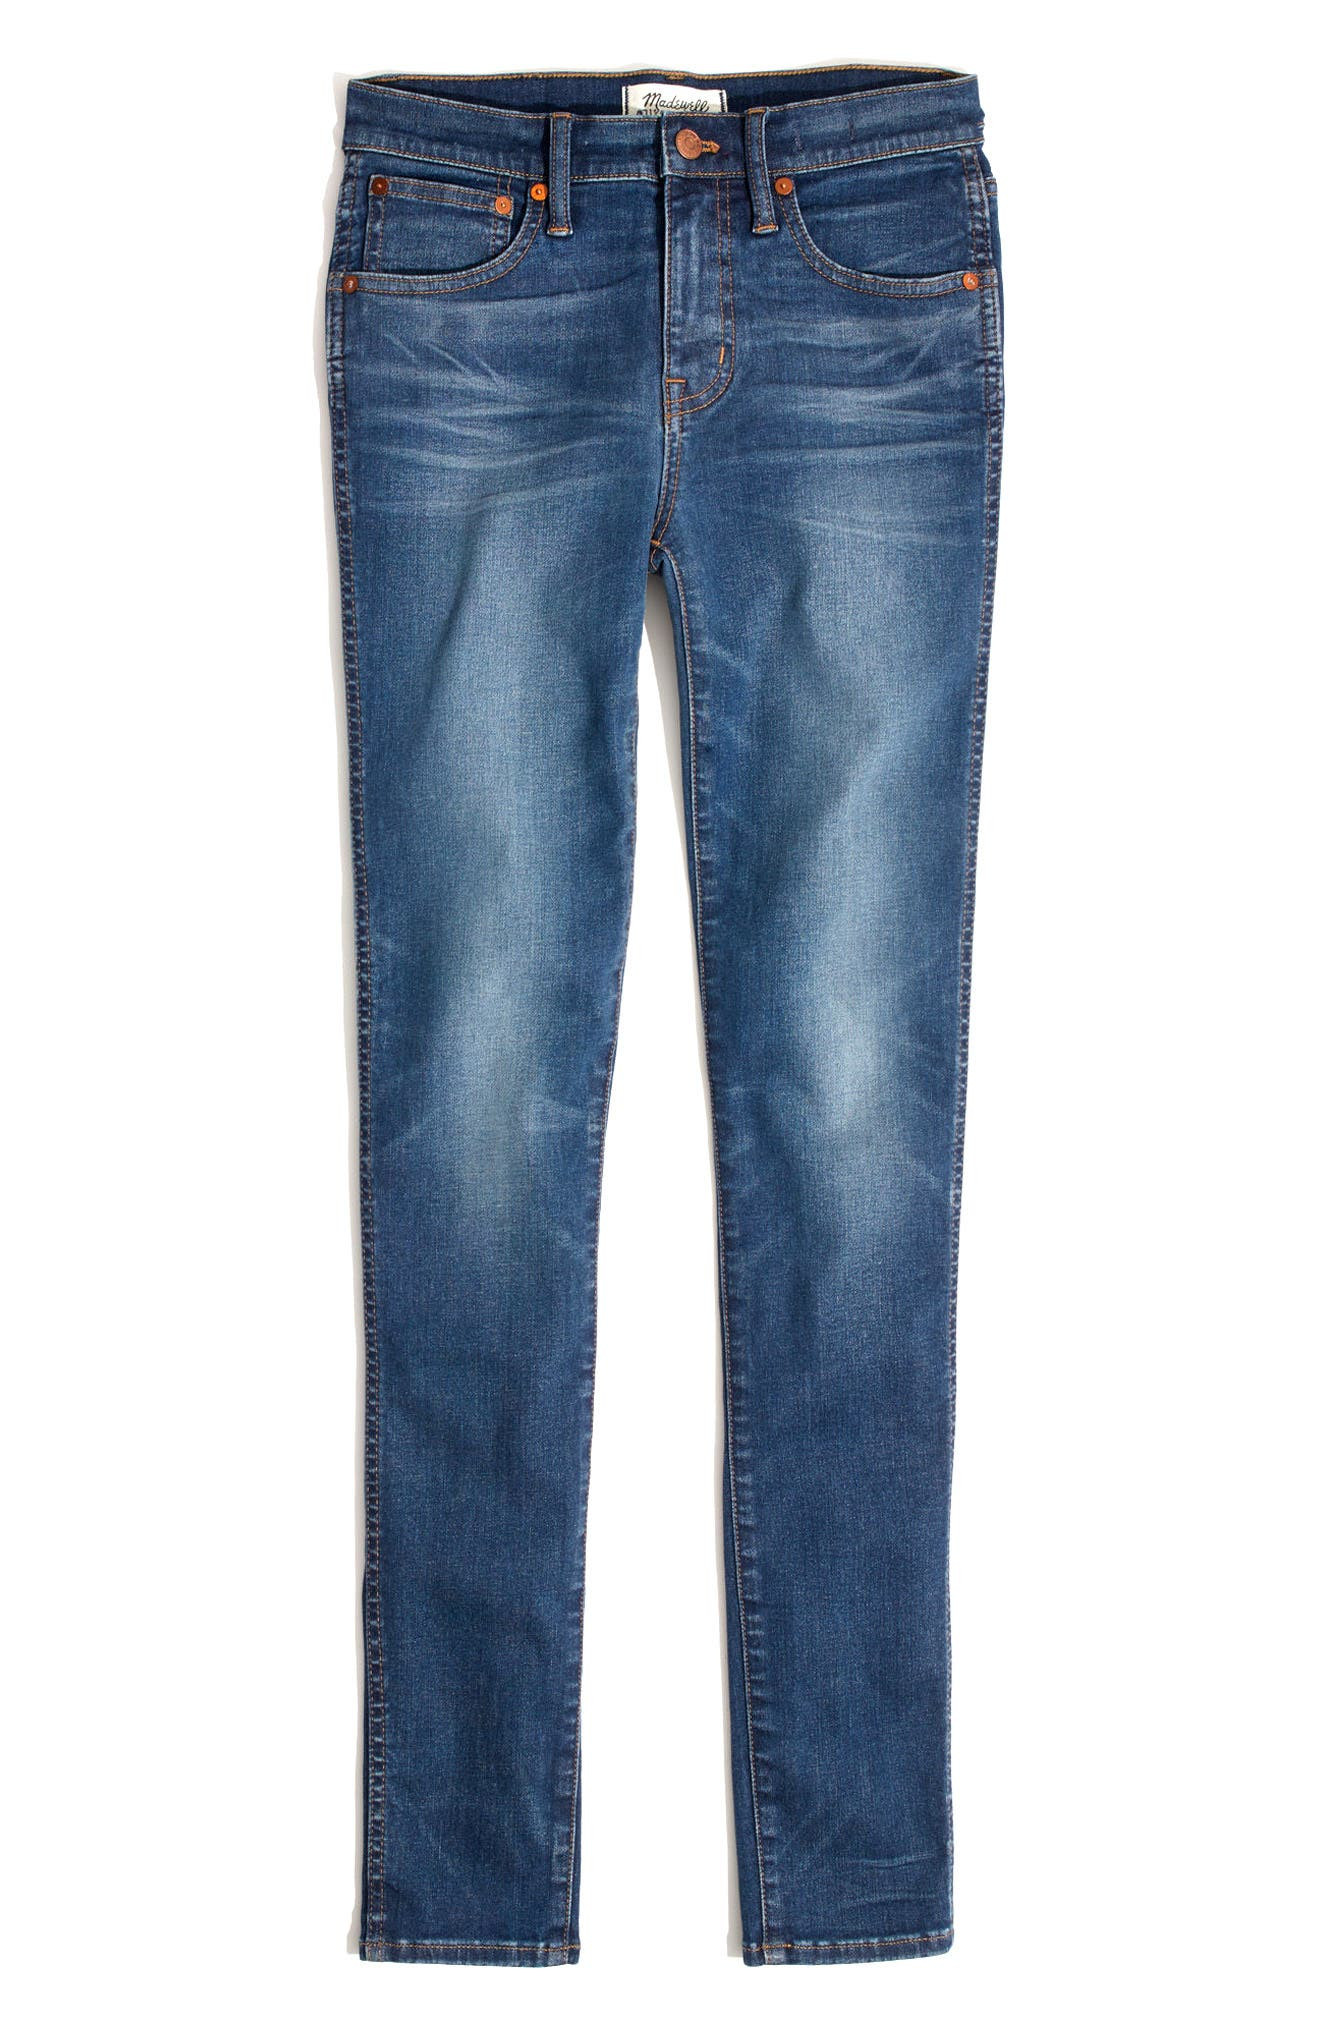 9-Inch High-Rise Skinny Jeans,                             Alternate thumbnail 3, color,                             400